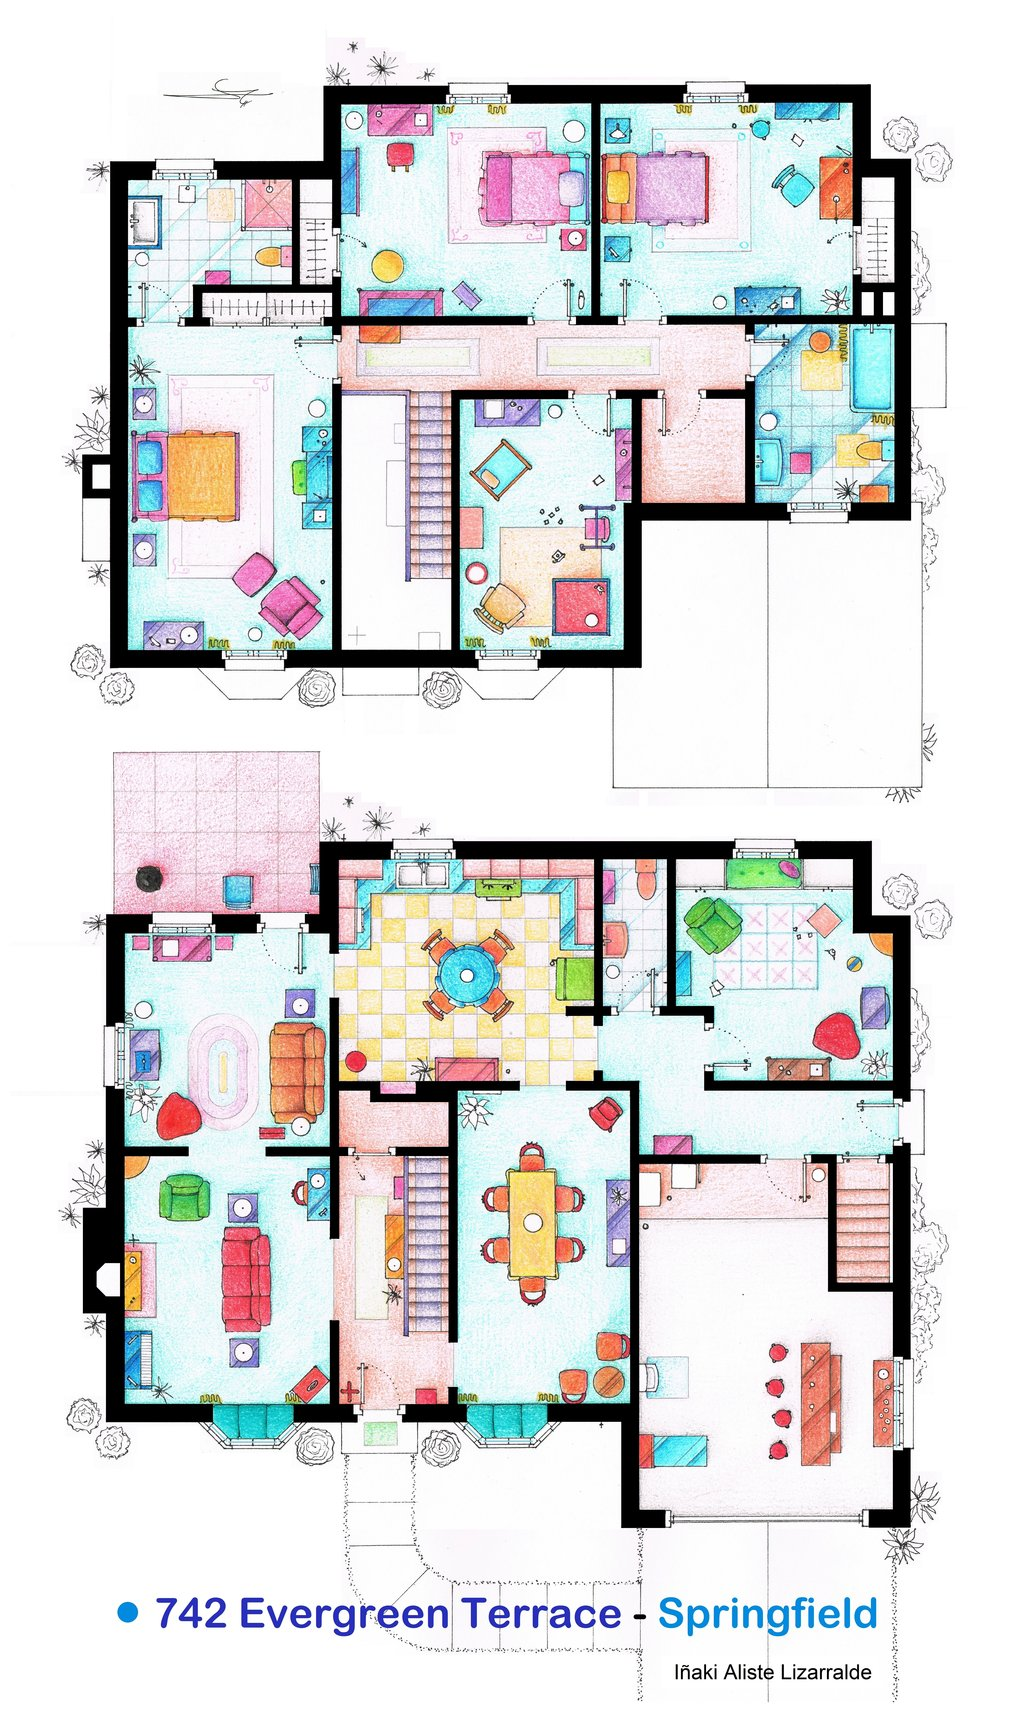 house_of_simpson_family___both_floorplans_by_nikneuk-d5tzvau